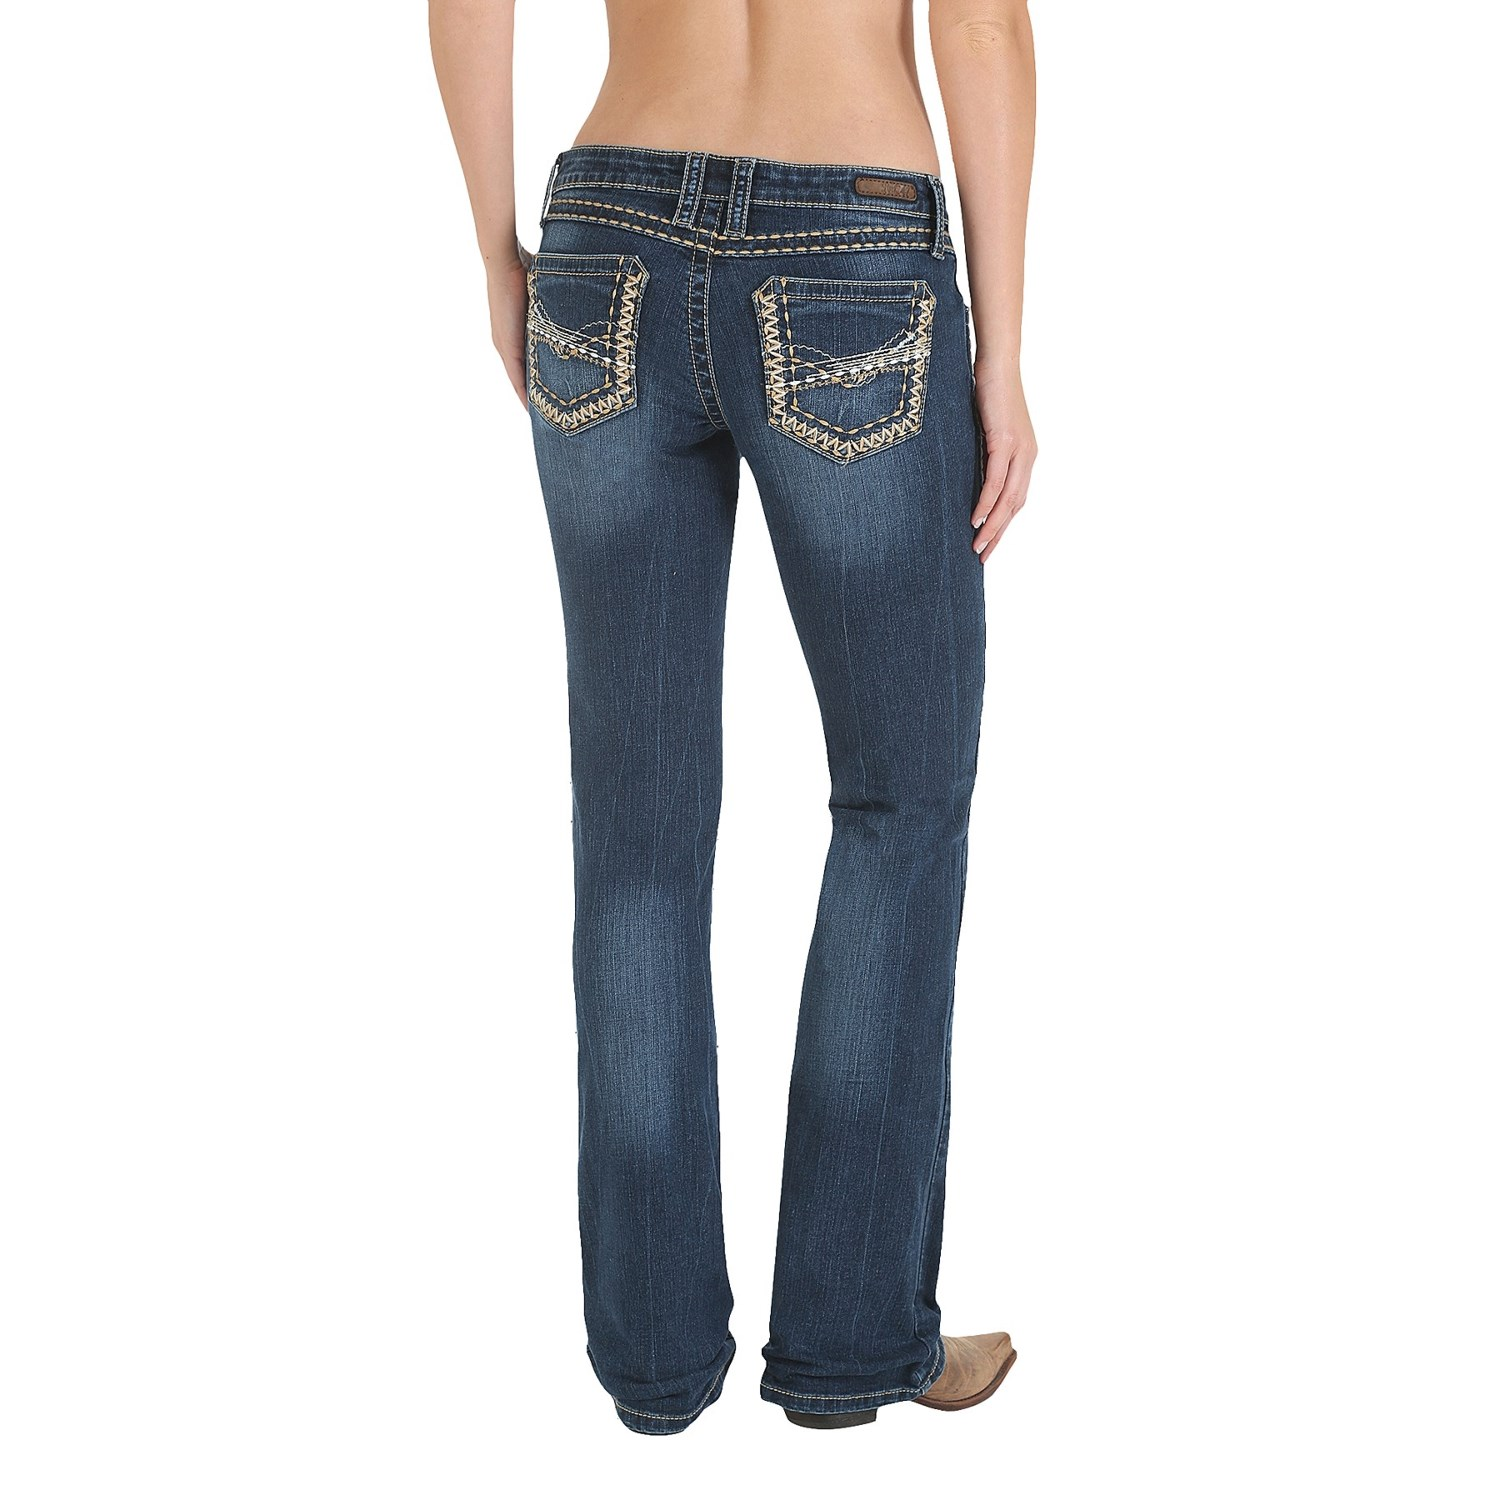 Low Rise Jeans Jeans All Bottoms Jeans View All High Rise Jeans Low Rise Jeans Jean Legging Best Match Price: Low to High Price: High to Low Newest Filter More Filters. Clear All. Womens Low Rise Jeans. Save quickview. Low Rise Super Skinny Jeans. Harper Stretch. $78 $39 Clearance. Save quickview. Low Rise Jean Leggings. Harper Stretch. $